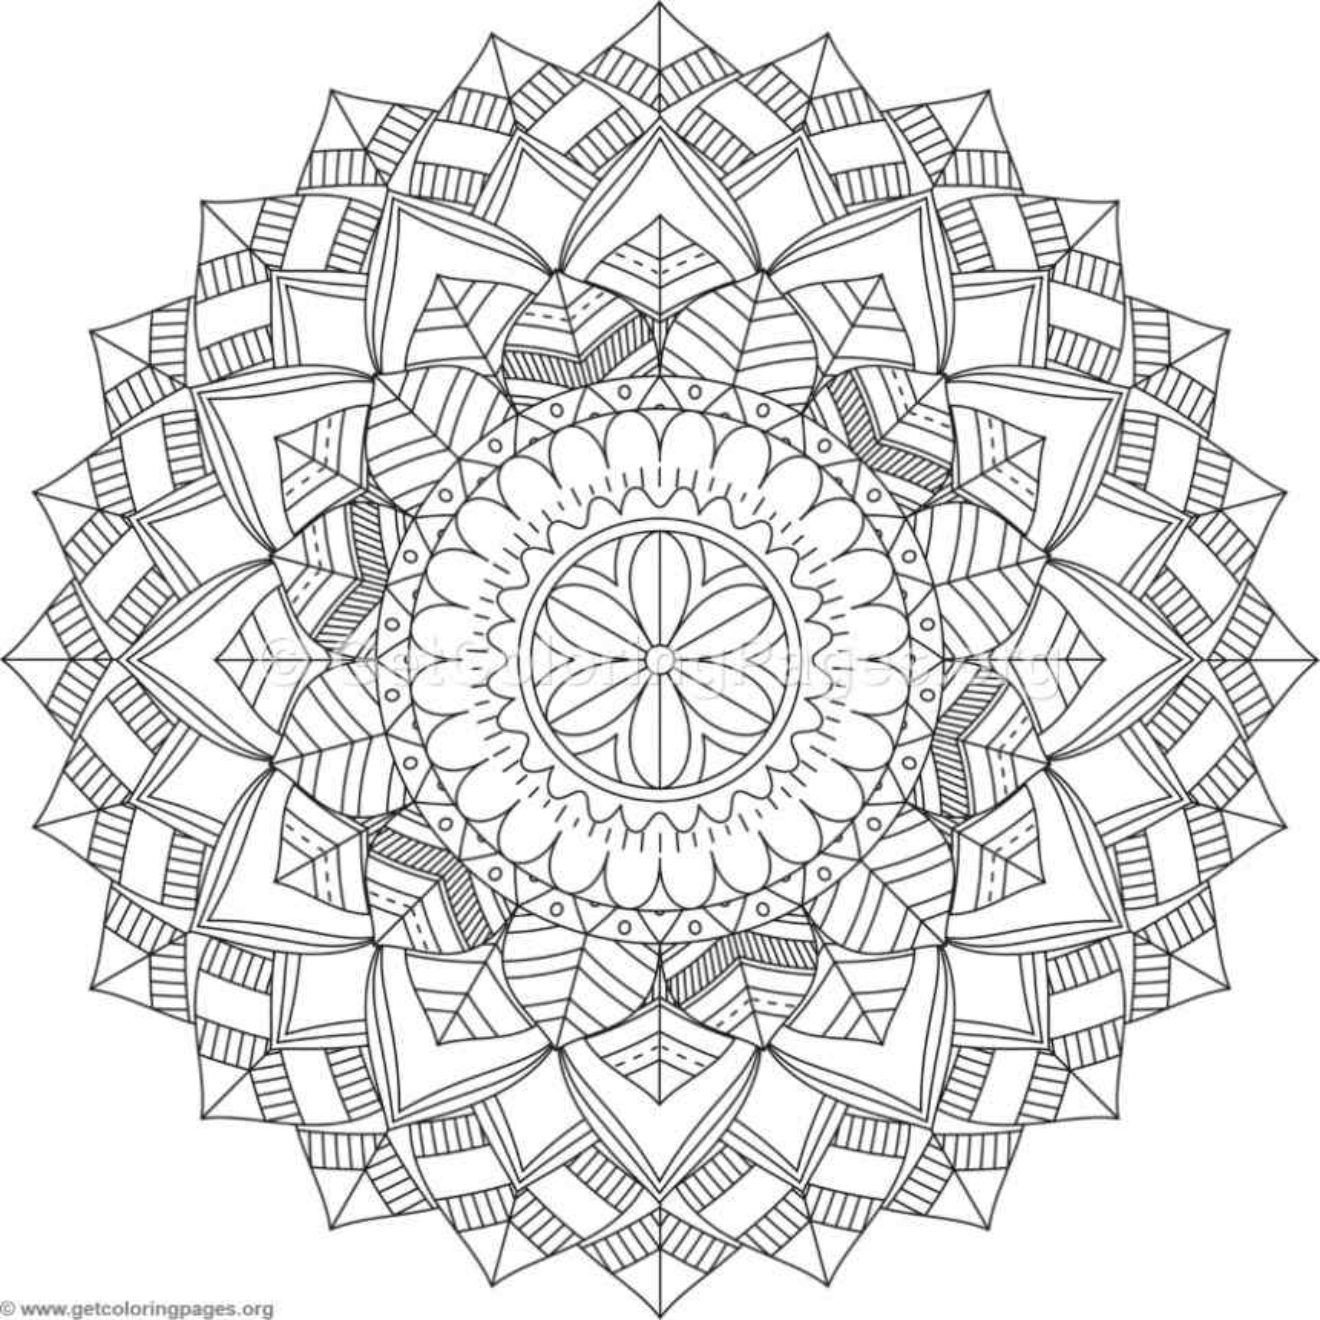 Tribal Mandala Coloring Pages 160 Mandala Coloring Pages Mandala Coloring Coloring Pages